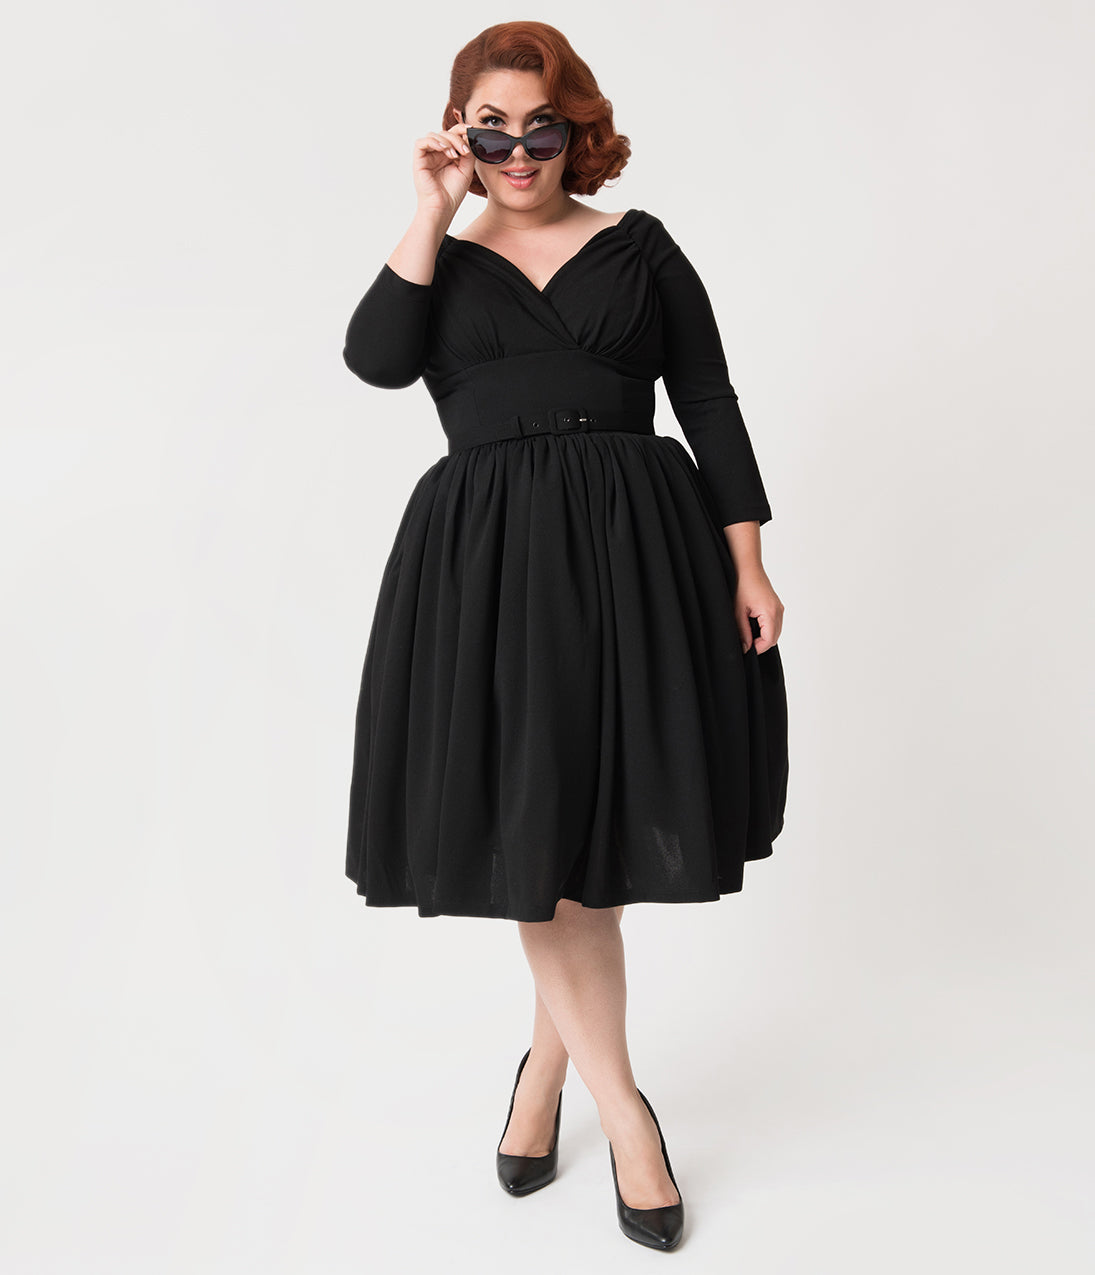 1960s Dresses | 60s Dresses Mod, Mini, Jakie O, Hippie Black Sleeved Starlet Swing Dress $178.00 AT vintagedancer.com